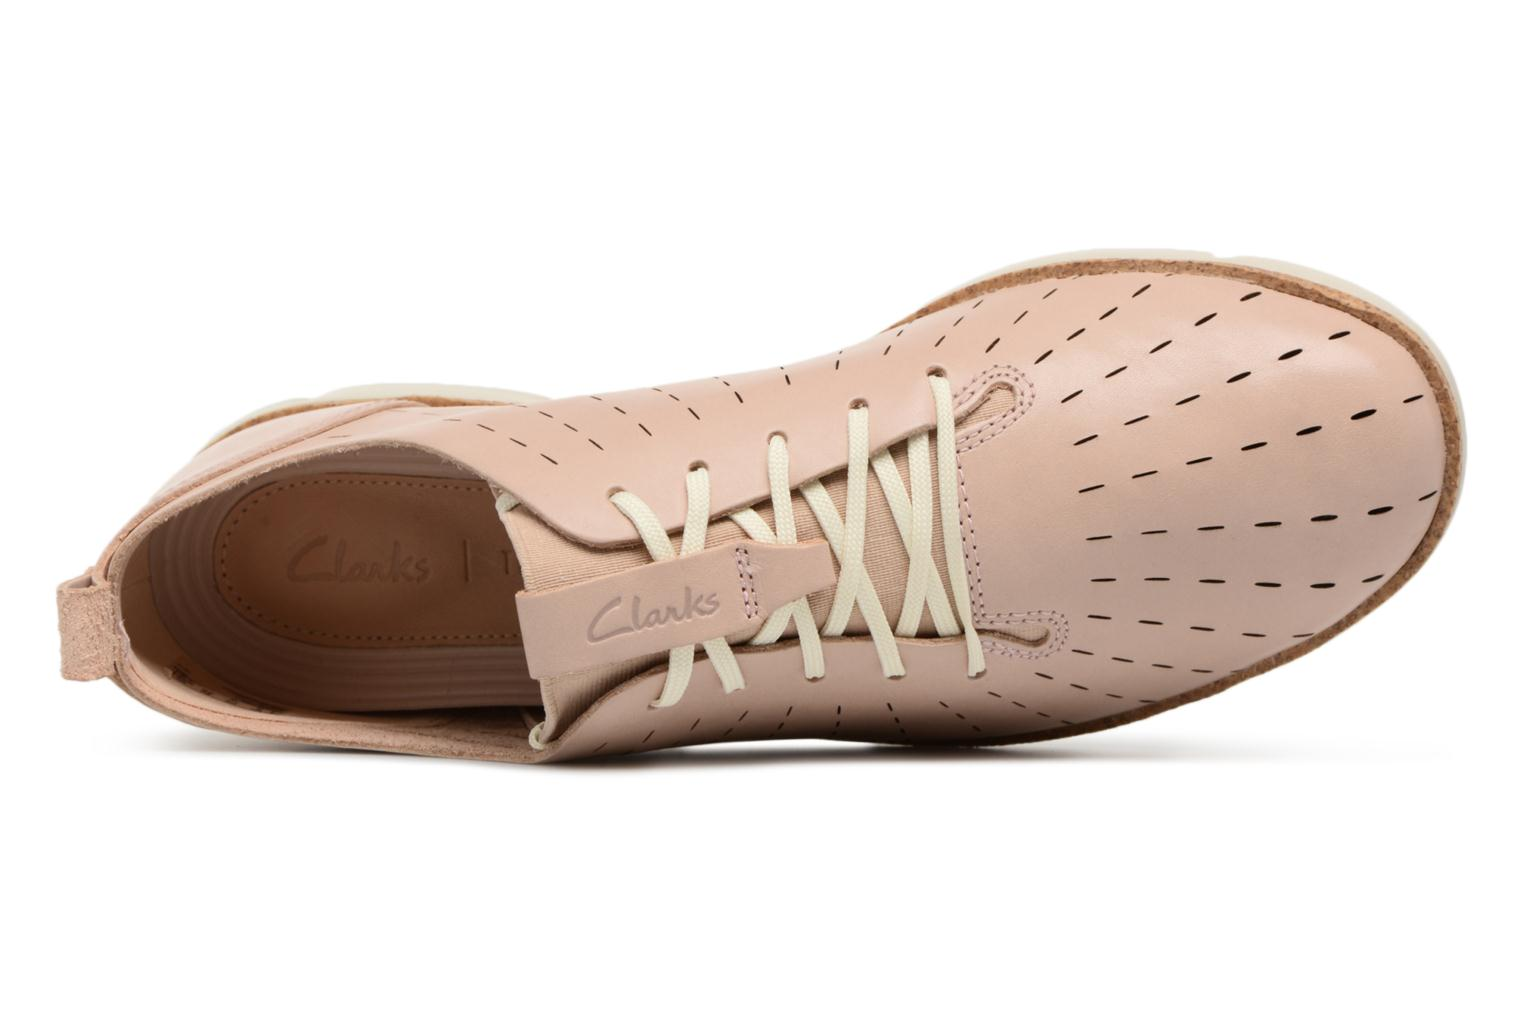 Lace-up shoes Clarks Tri Etch Beige view from the left